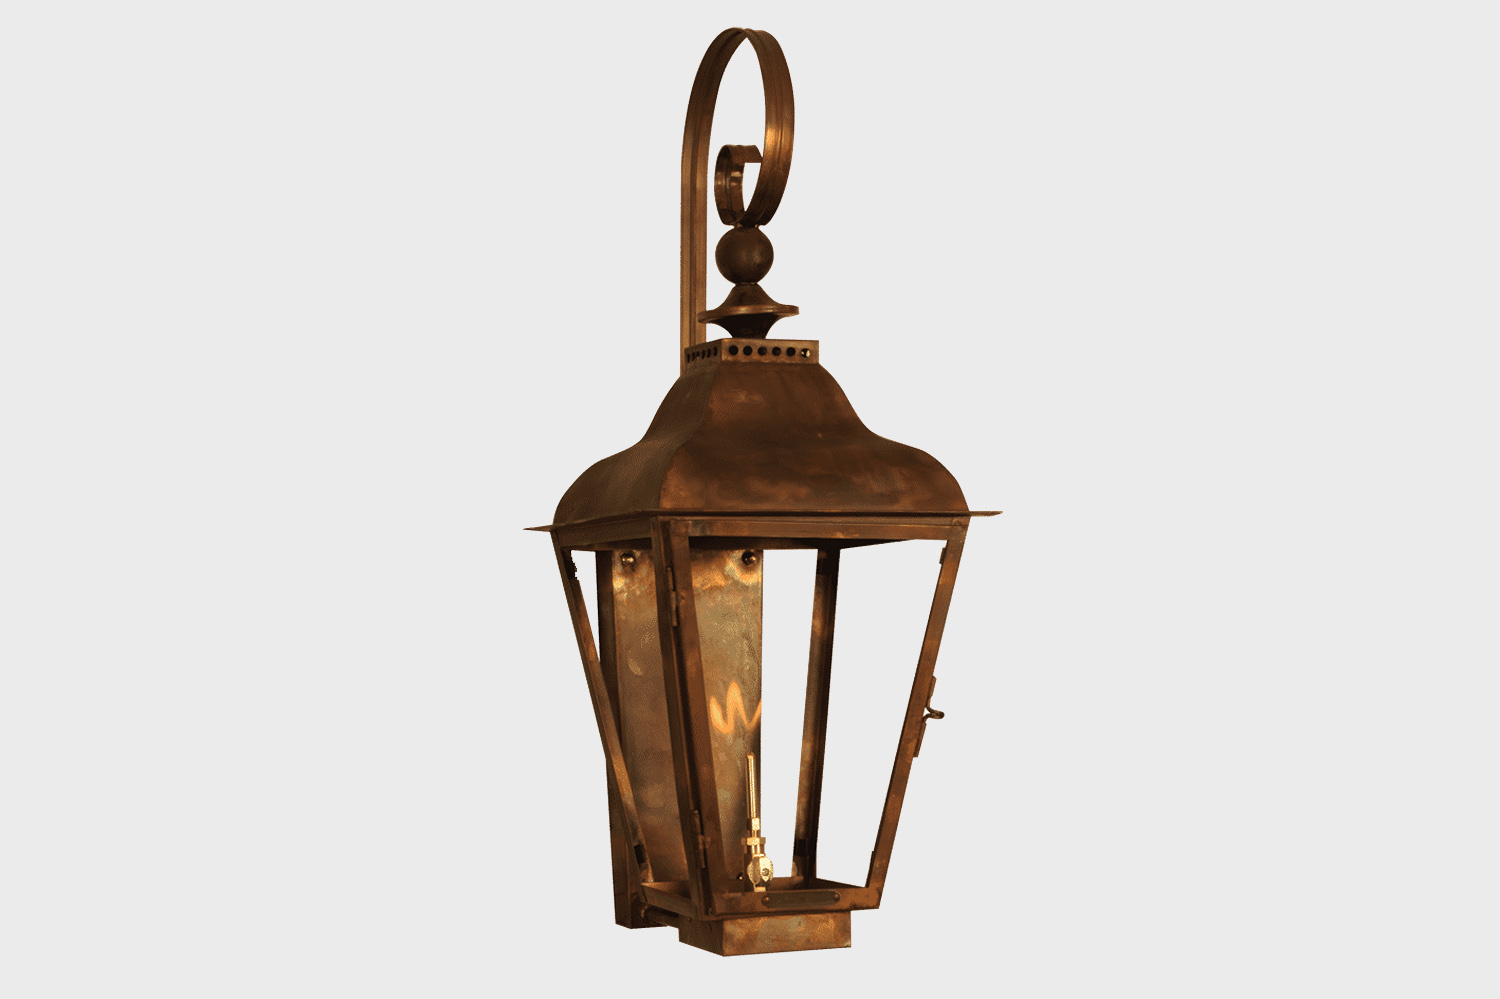 hanging copper gas lamp